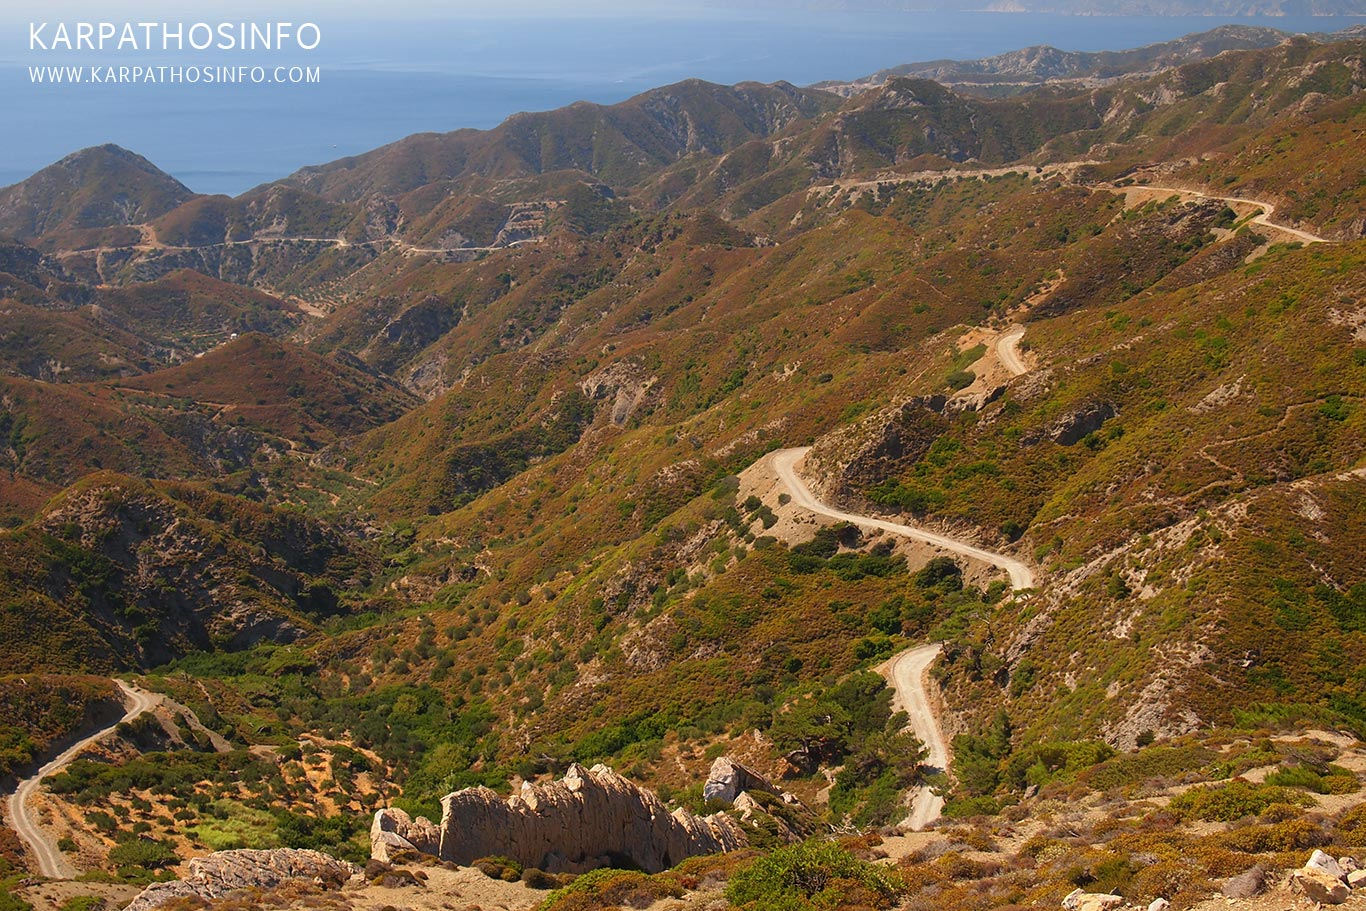 Off-road driving in Karpathos island